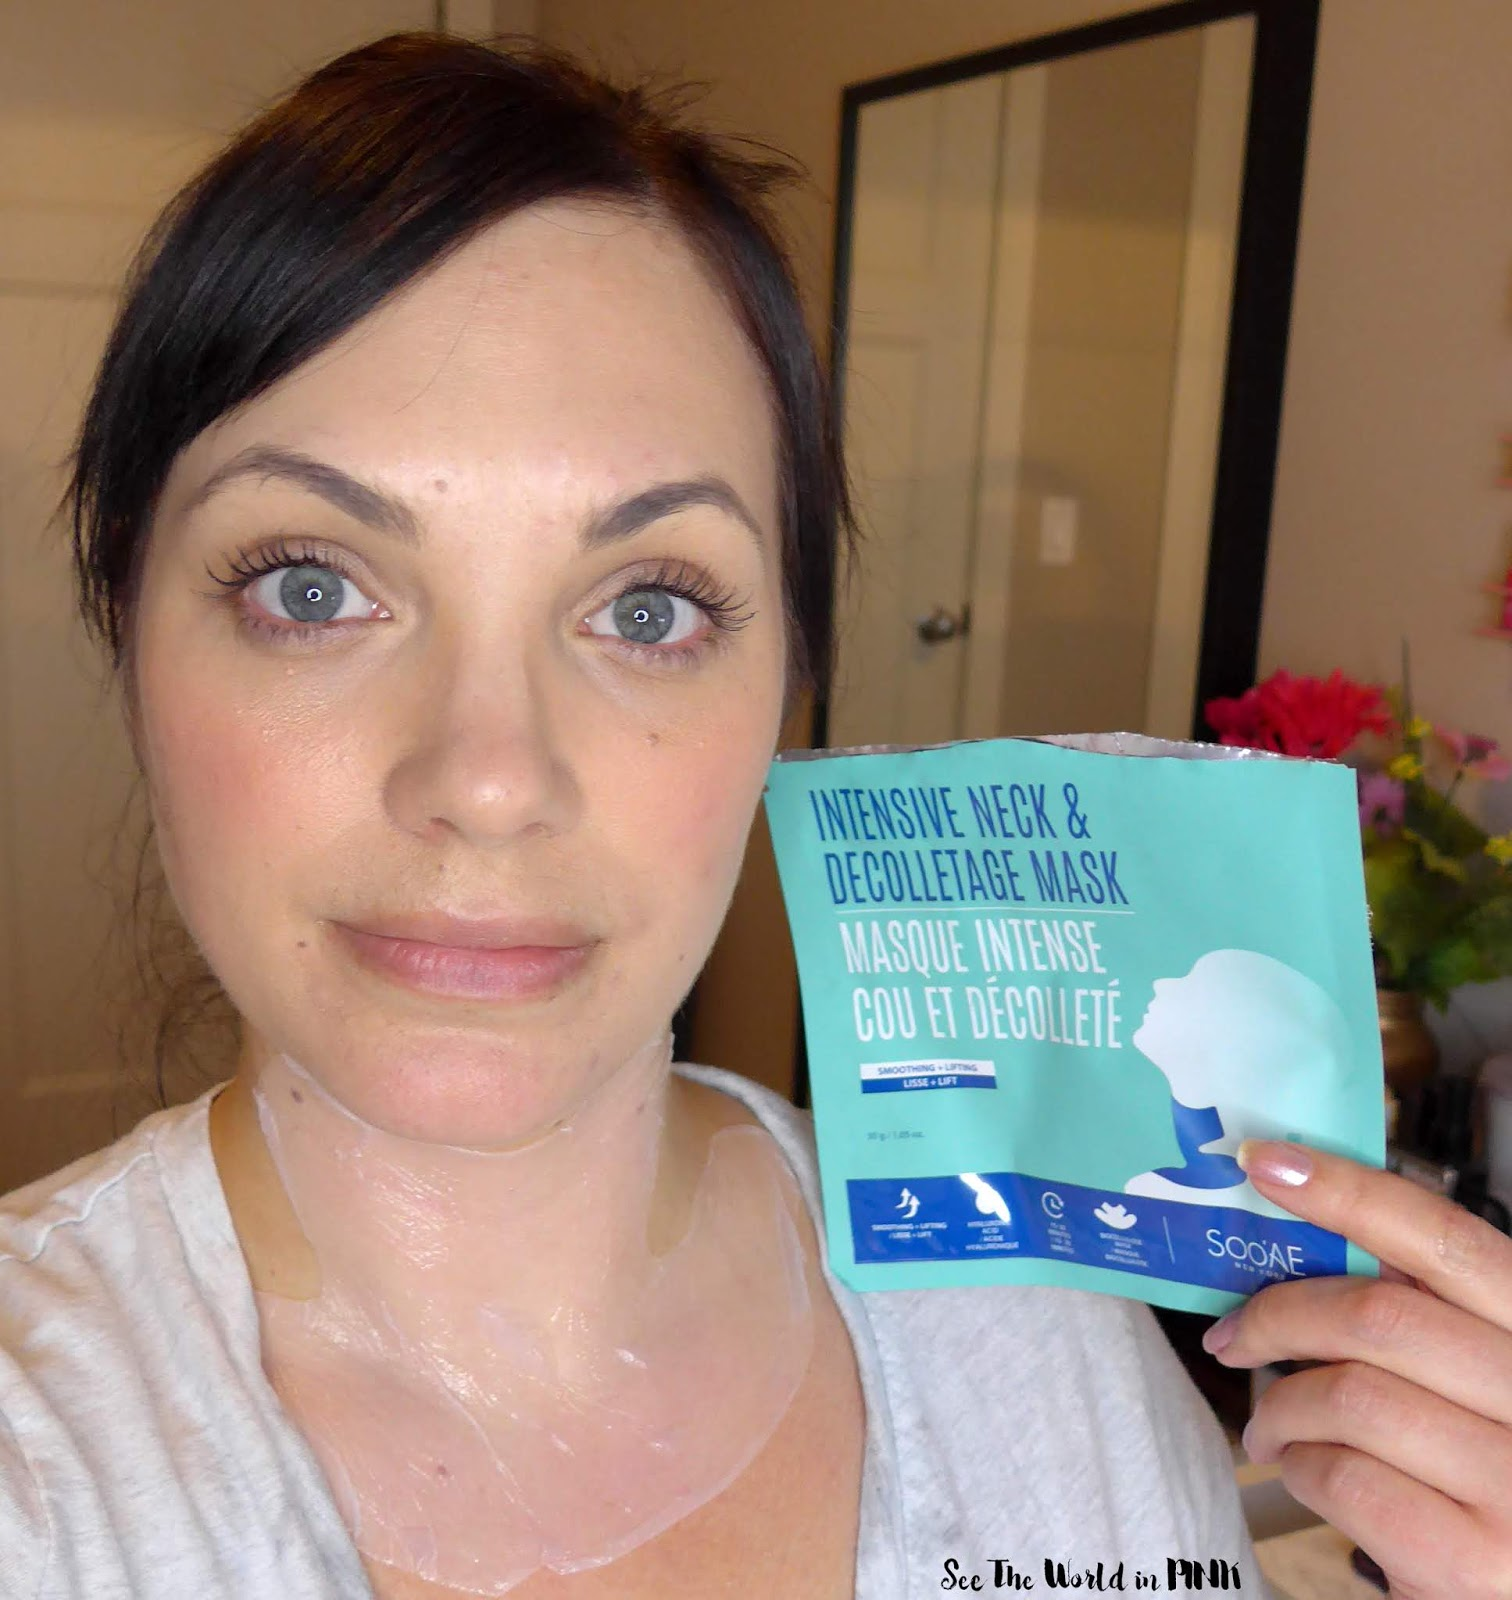 Skincare Sunday - Soo AE Intensive Neck & Decolletage Mask